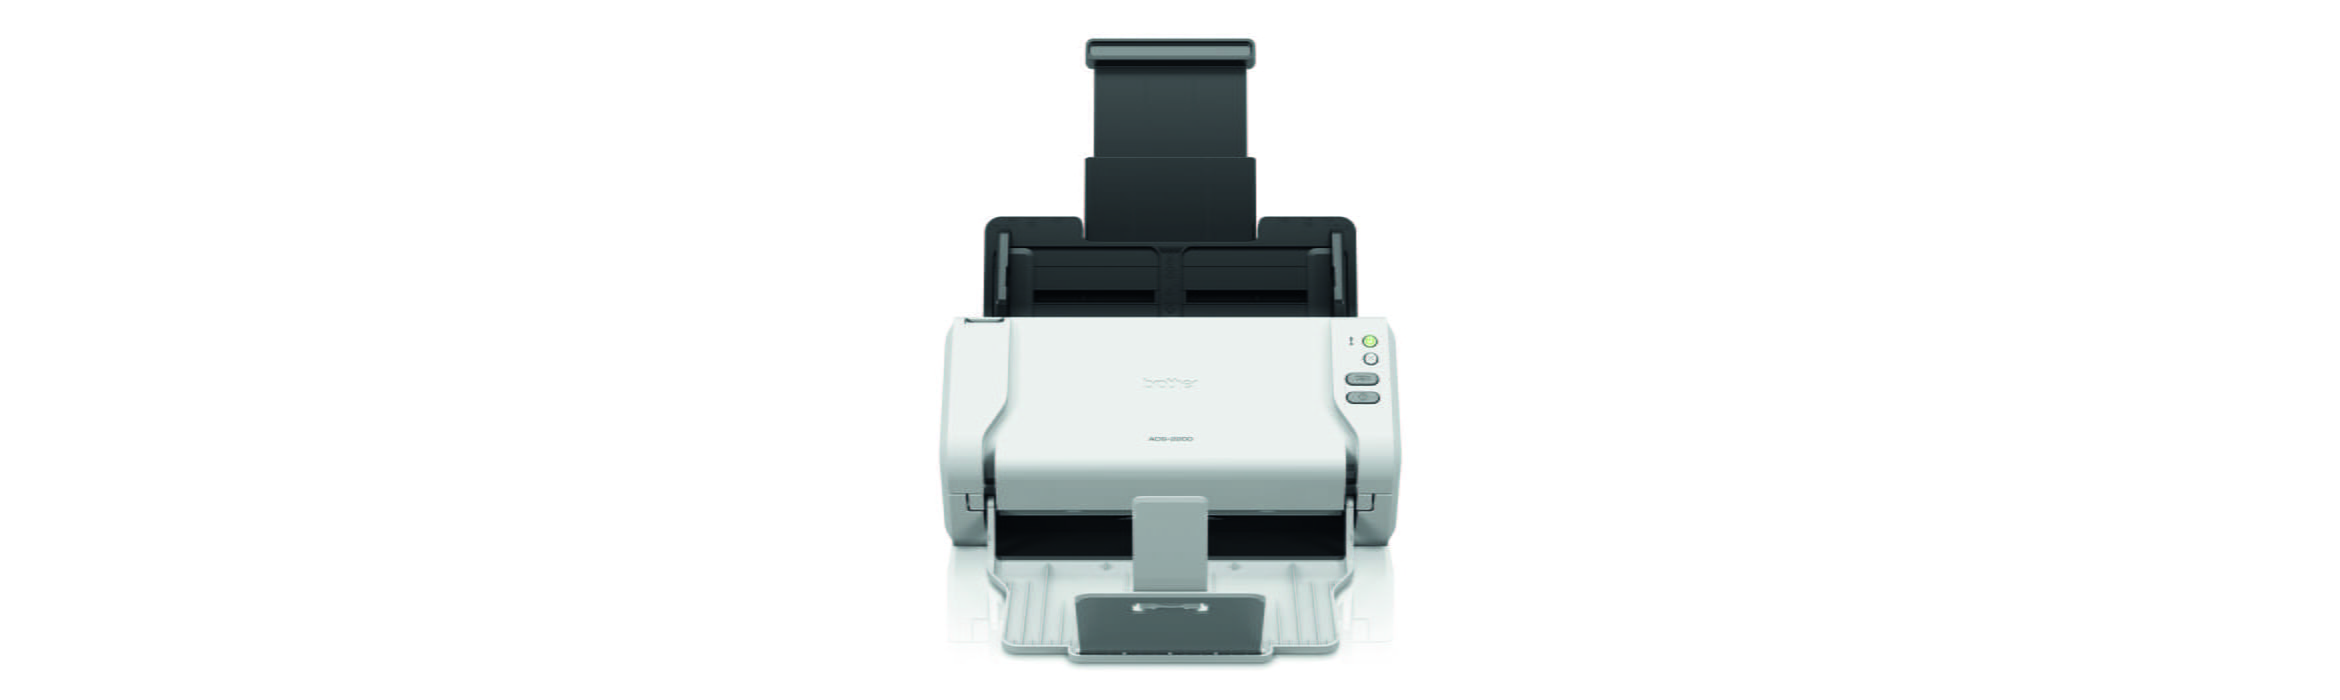 Brother ADS-2200 desktop document scanner front view